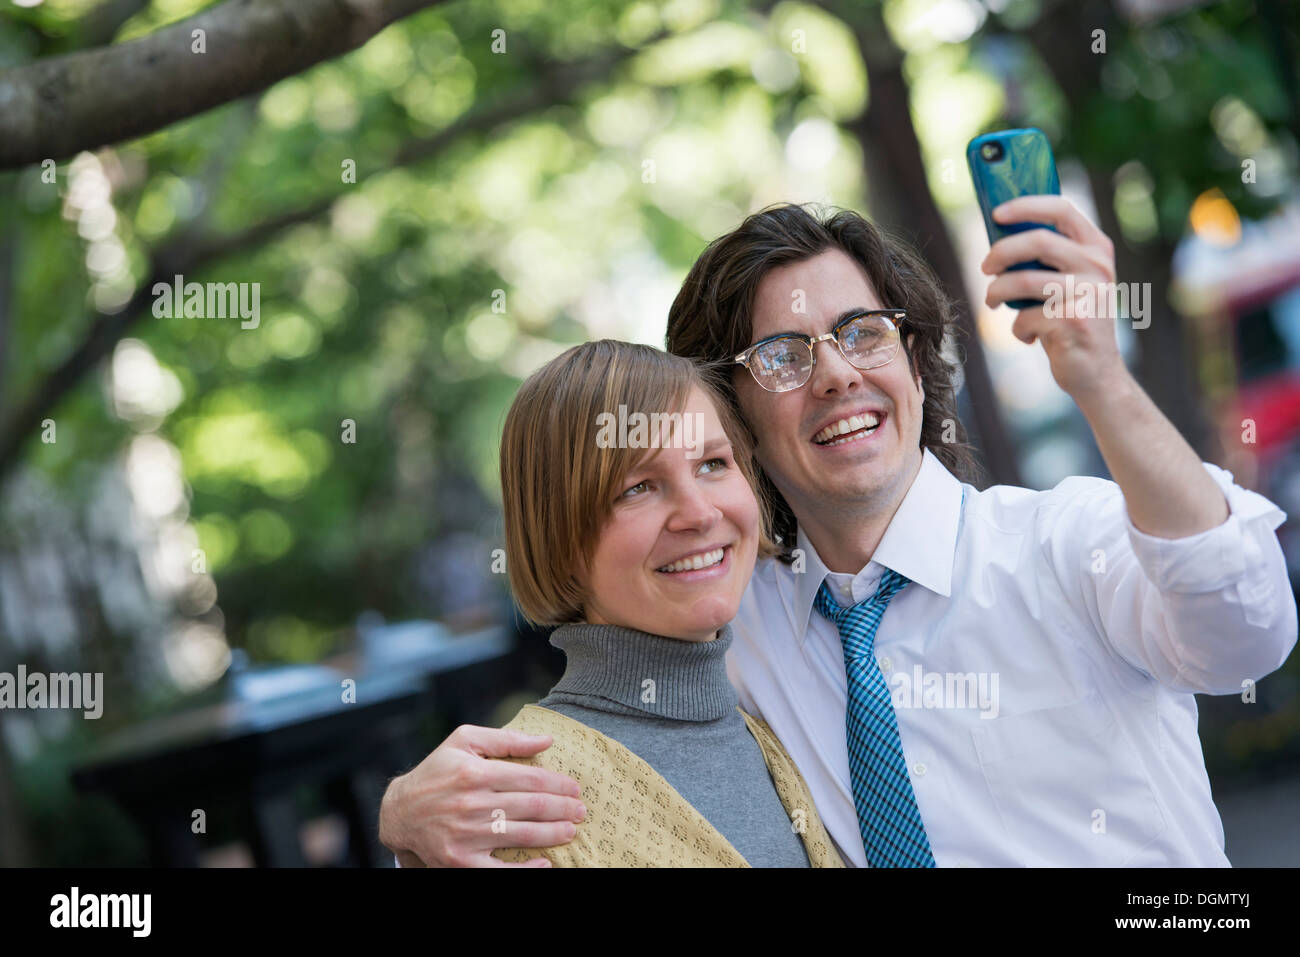 City. Two people, a man and woman outdoors, side by side posing for a photograph using his smart phone. - Stock Image